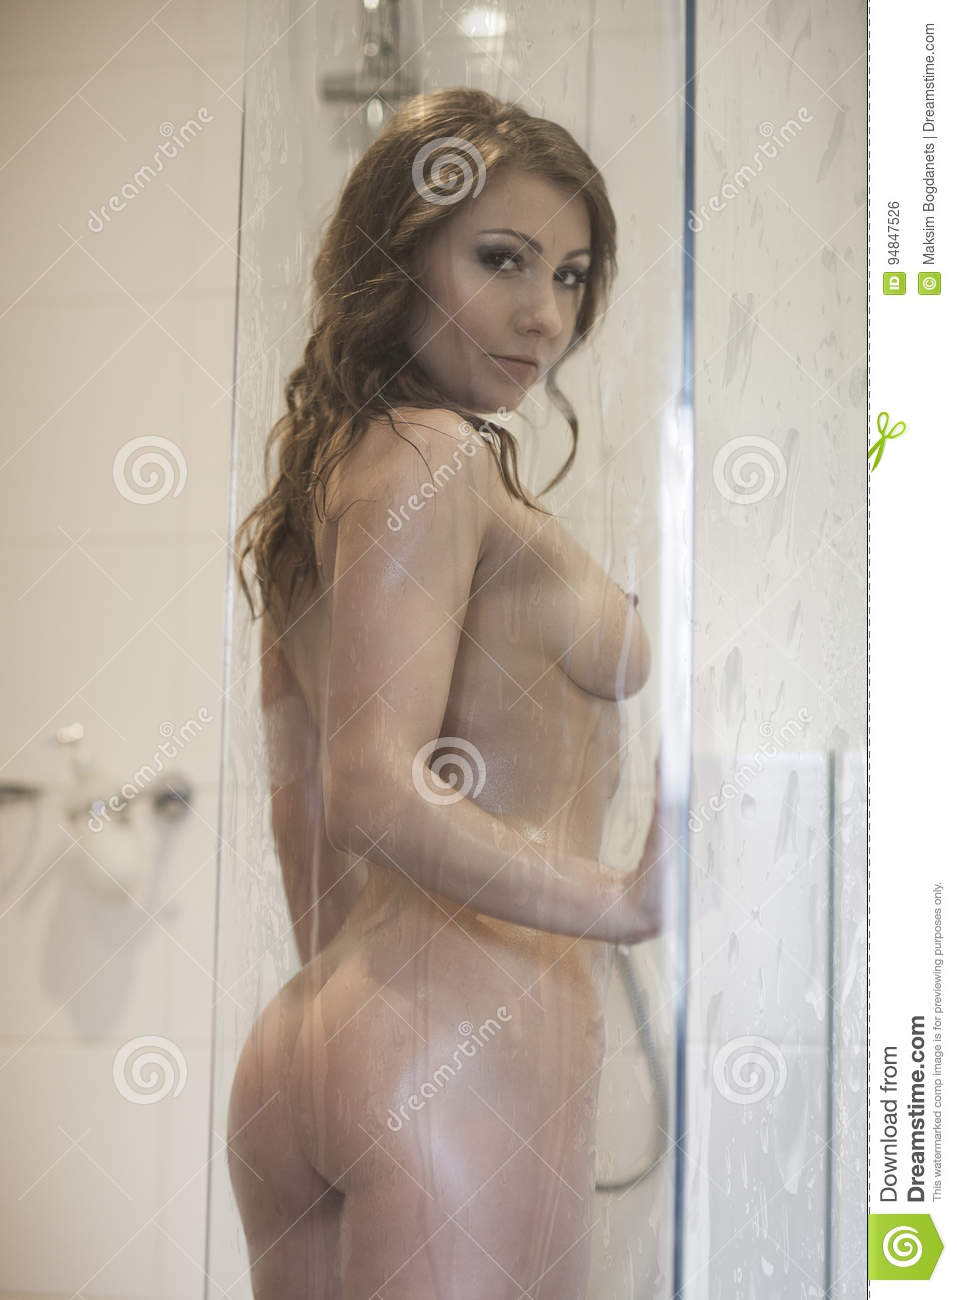 young woman taking shower, full naked looking at camera stock photo